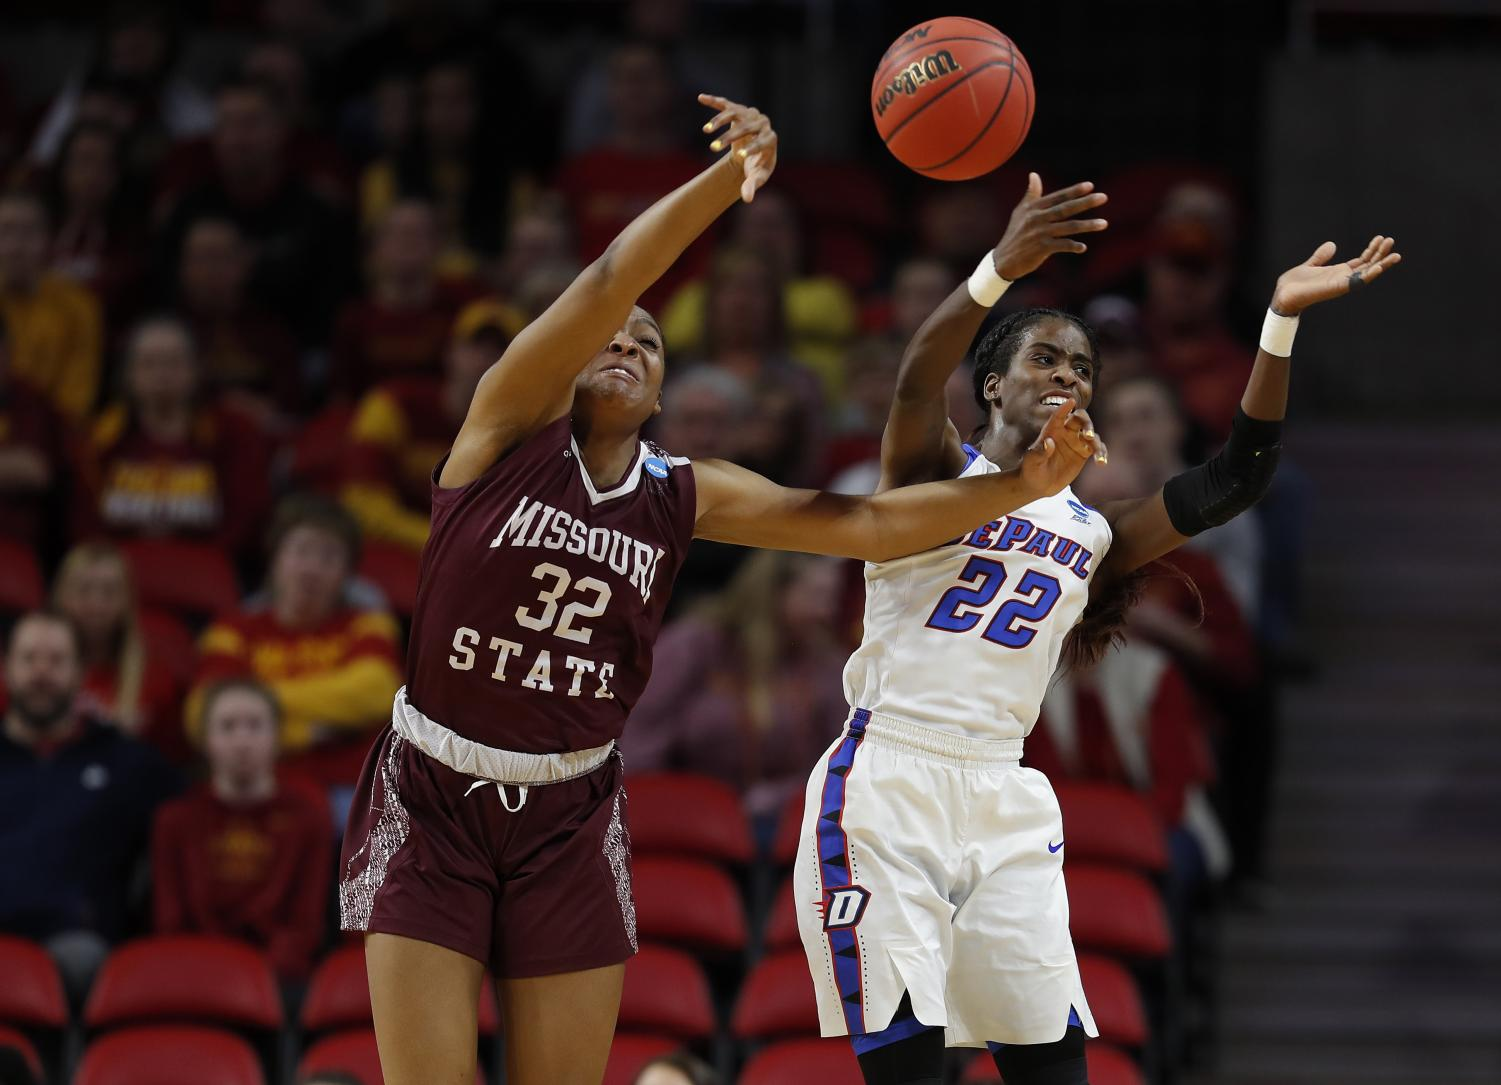 DePaul senior forward Chante Stonewall battles Missouri State forward Jasmine Franklin during the first round of the NCAA Tournament Saturday afternoon in Ames, Iowa. The Blue Demons lost the game 89-78. Matthew Putney | AP